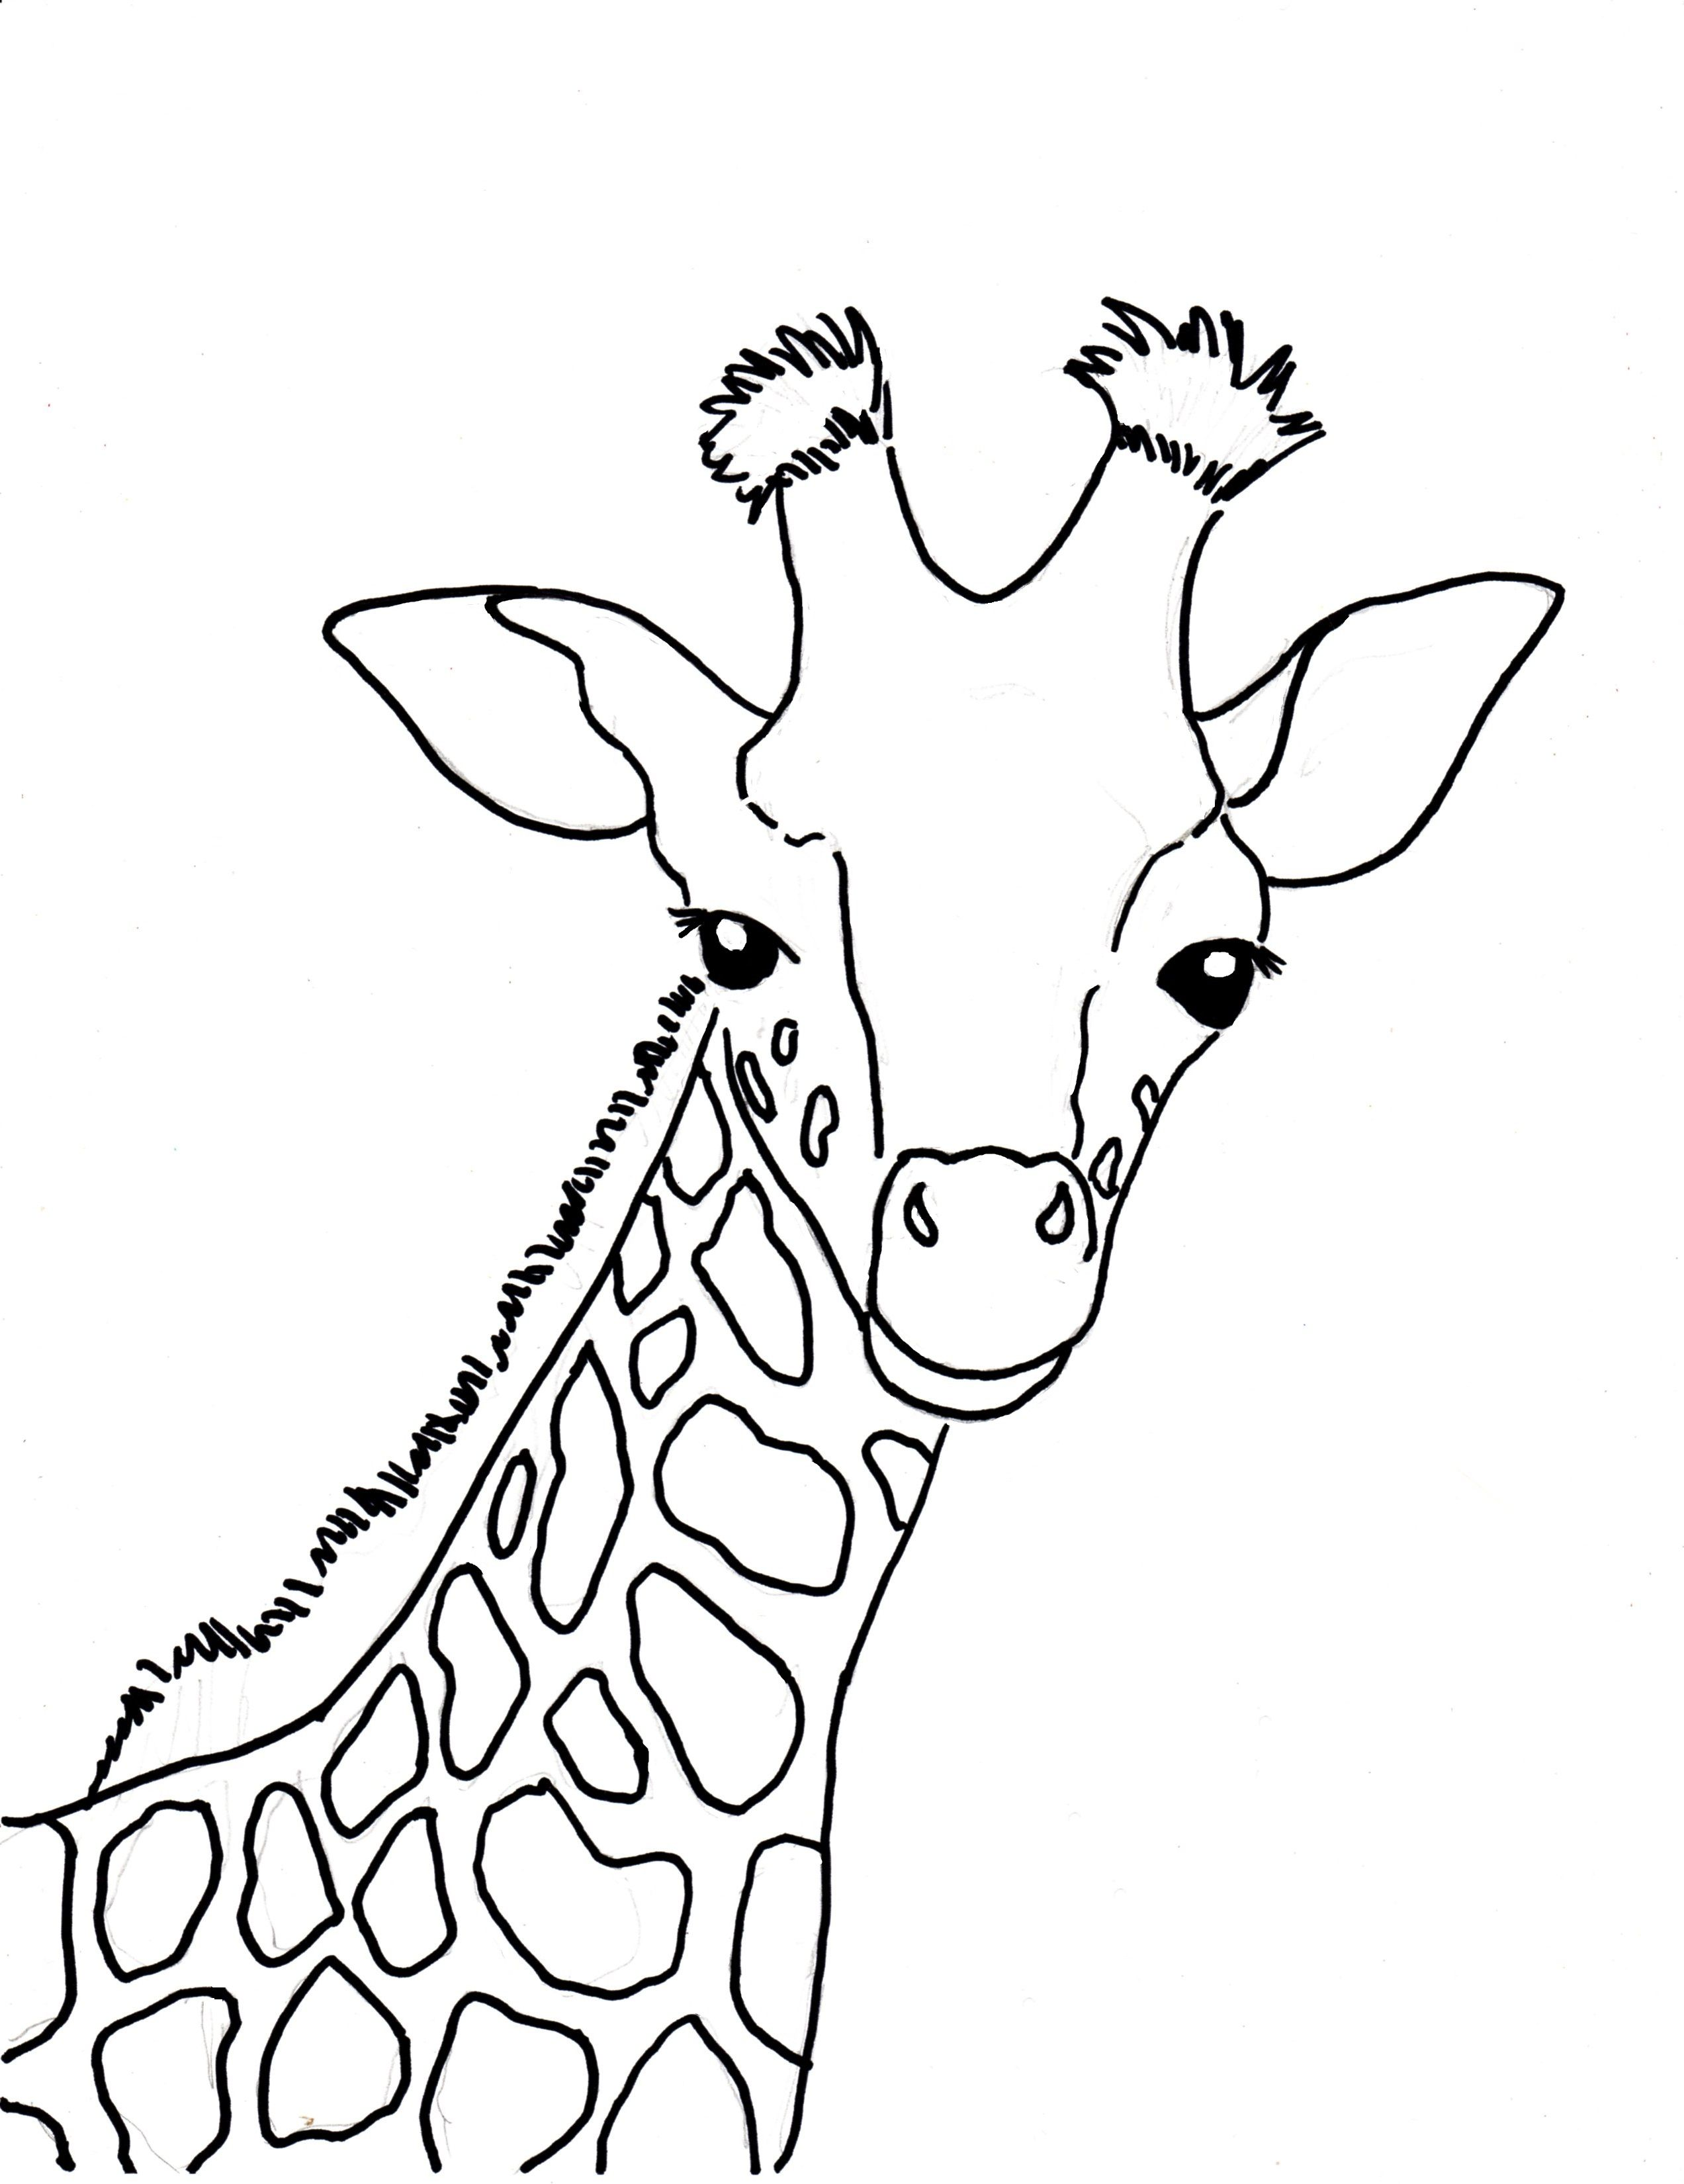 Giraffe Coloring Pages For S